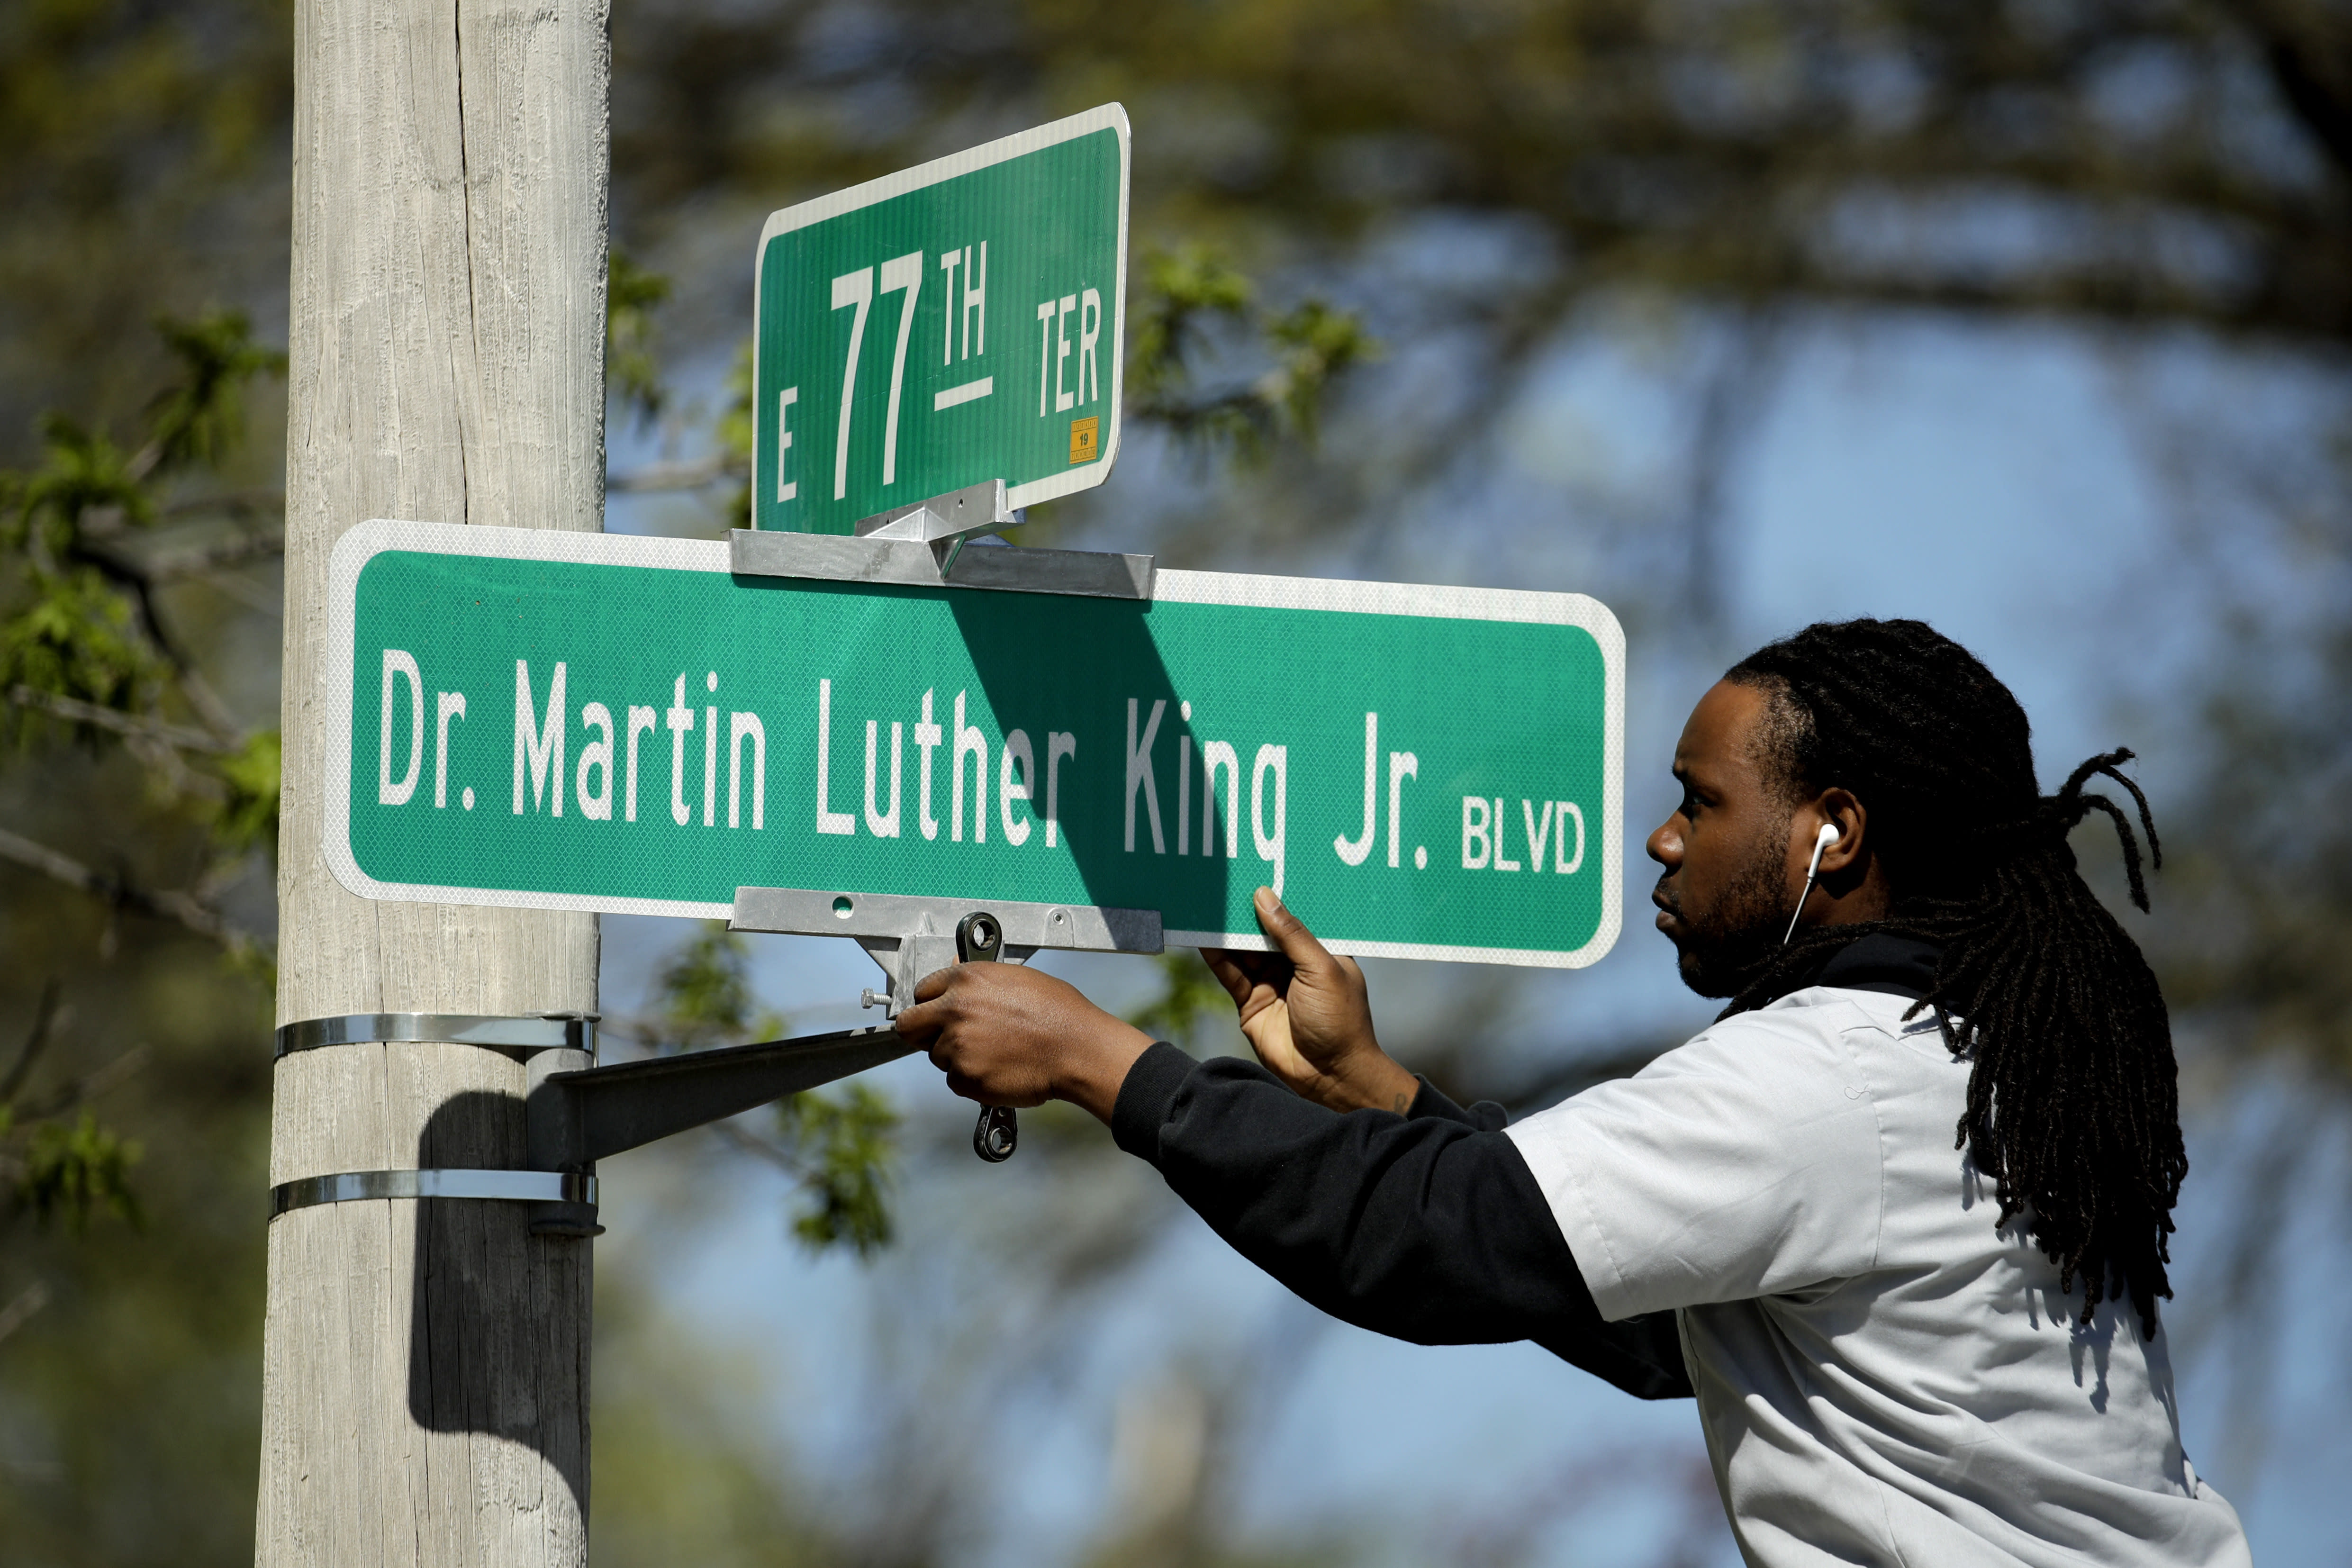 City votes overwhelmingly to remove Martin Luther King's name from historic street - Yahoo News